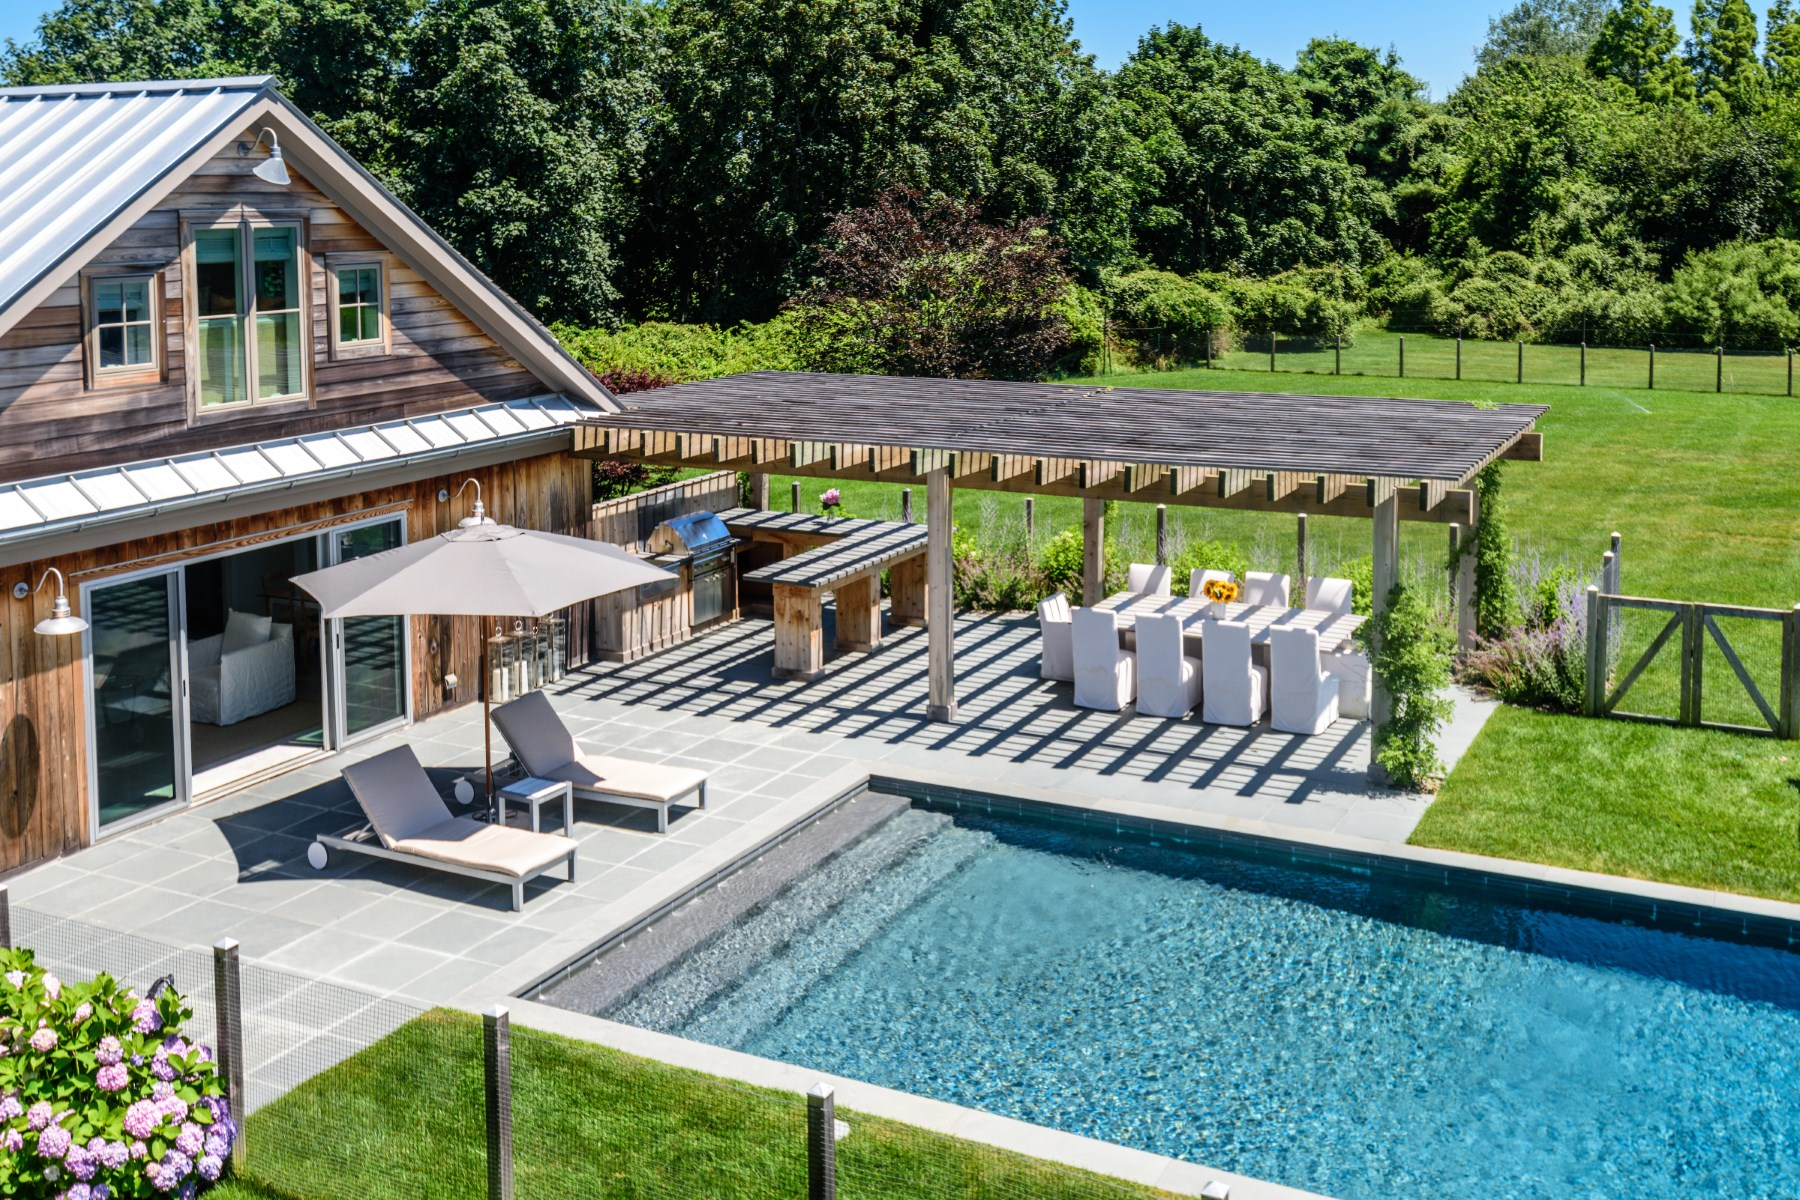 Additional photo for property listing at MODERN BARN STYLE, POND VIEWS 25 Jennifir Lane Bridgehampton, New York 11932 United States